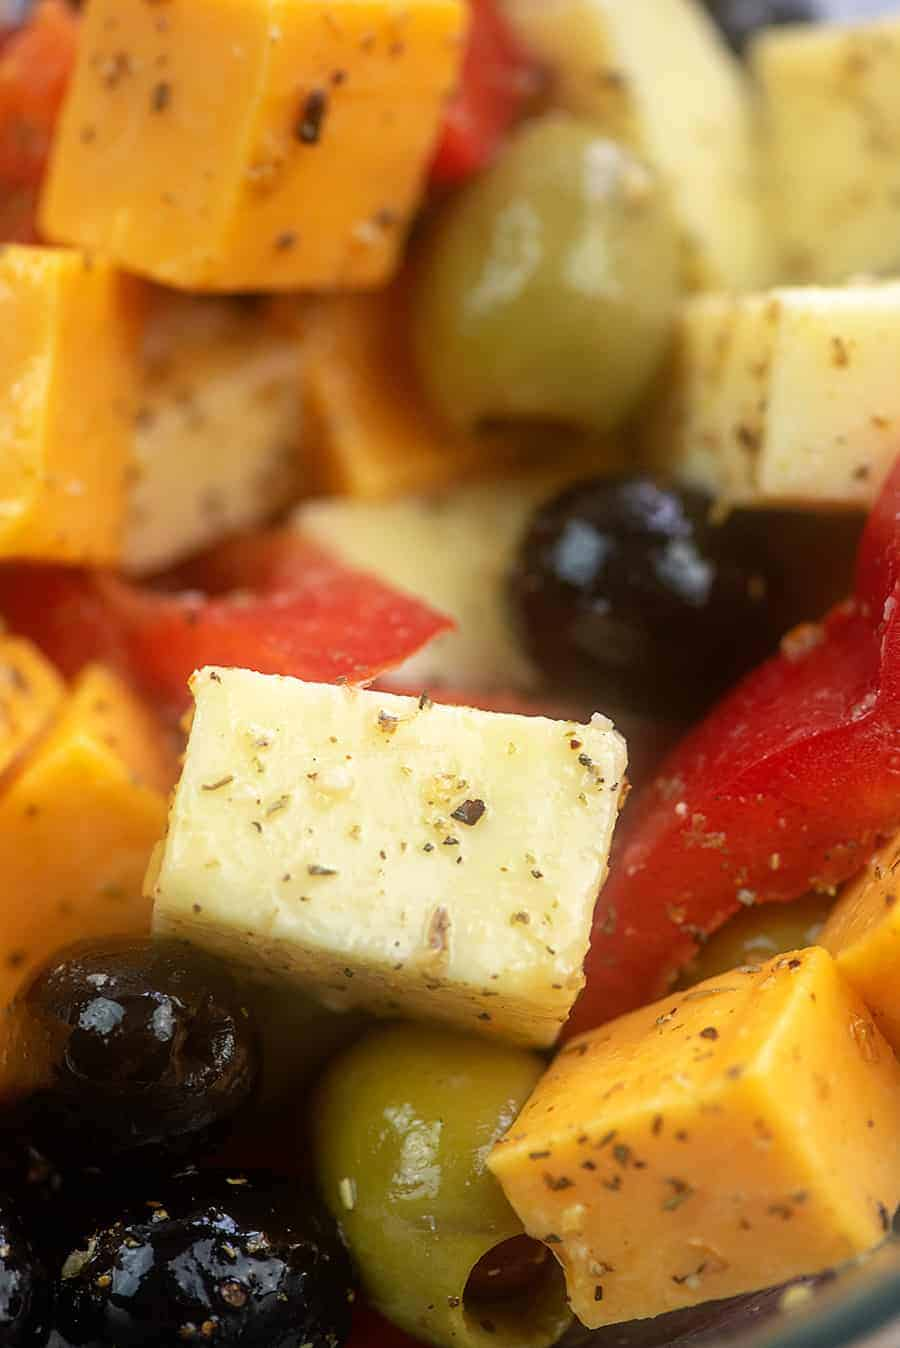 A close up of seasoned cheese and olives